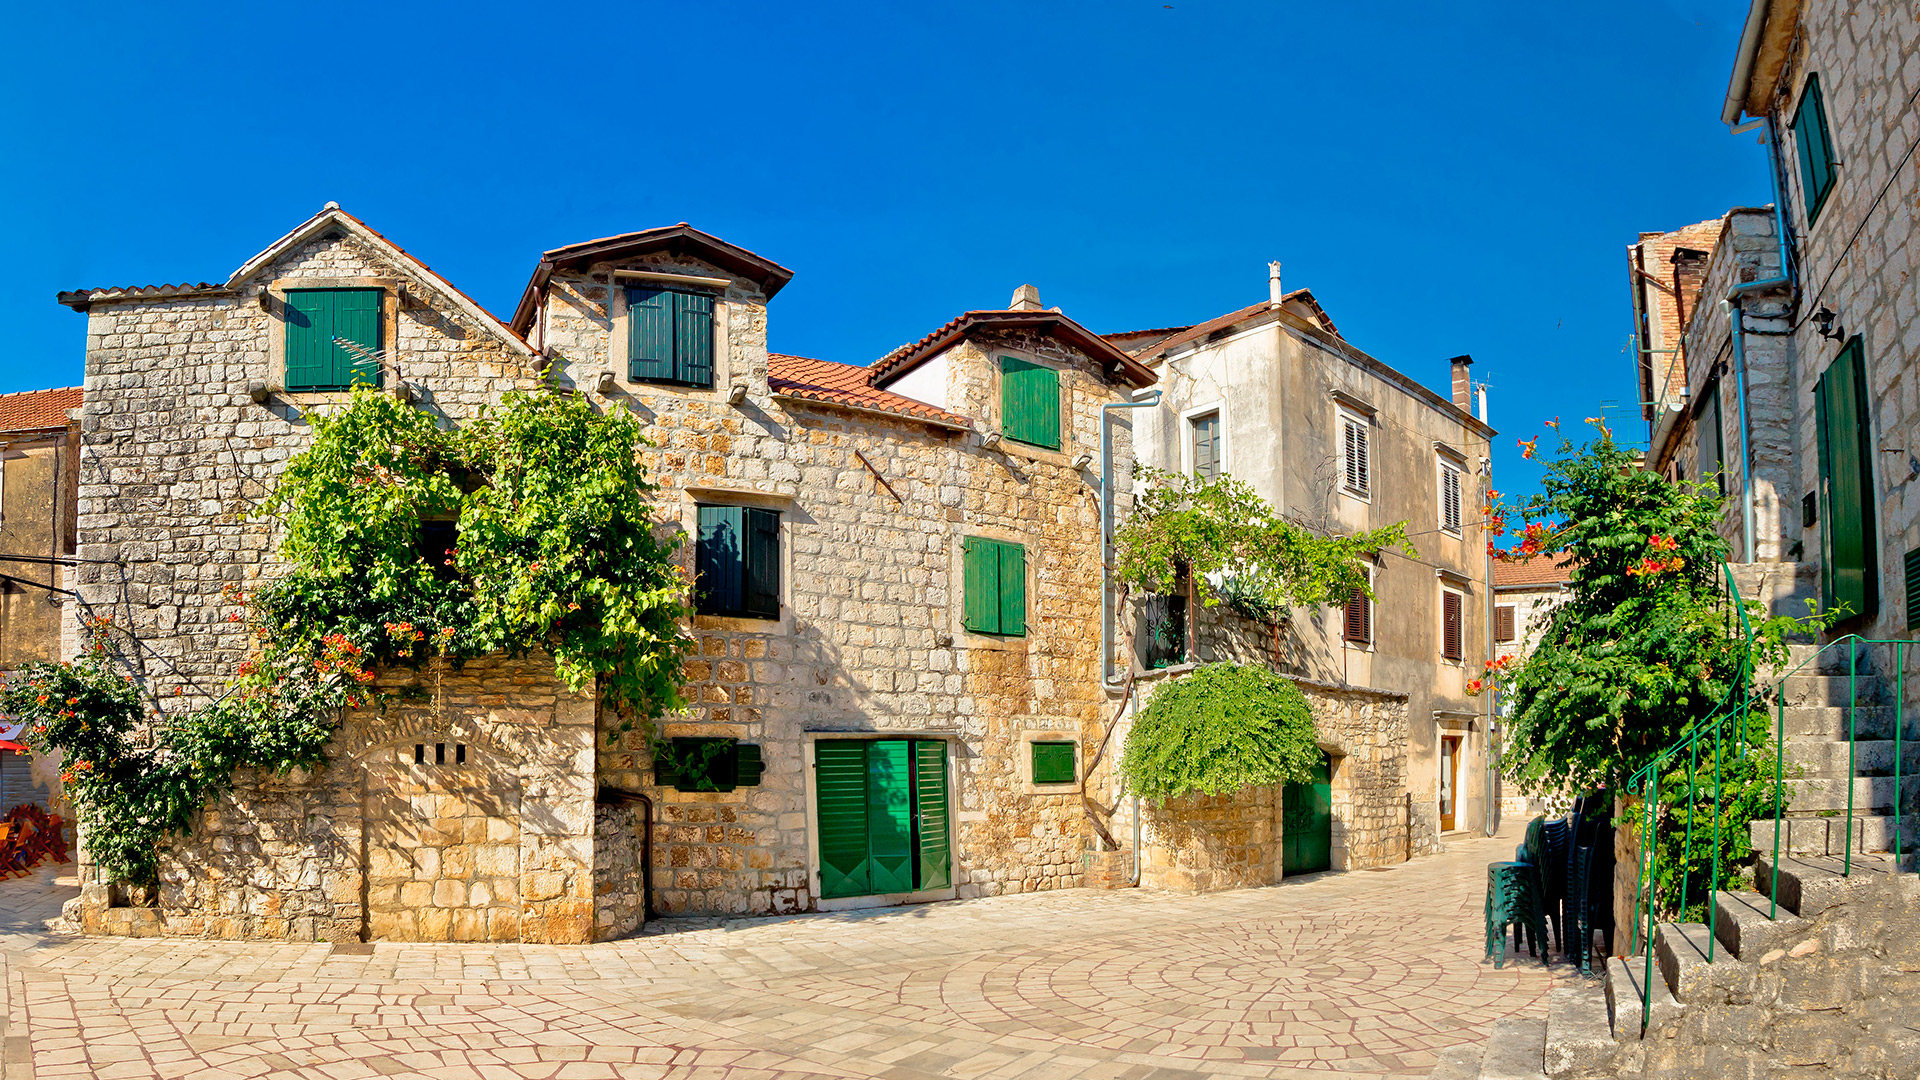 Streets of the Old town of Hvar, Hvar island, Croatia